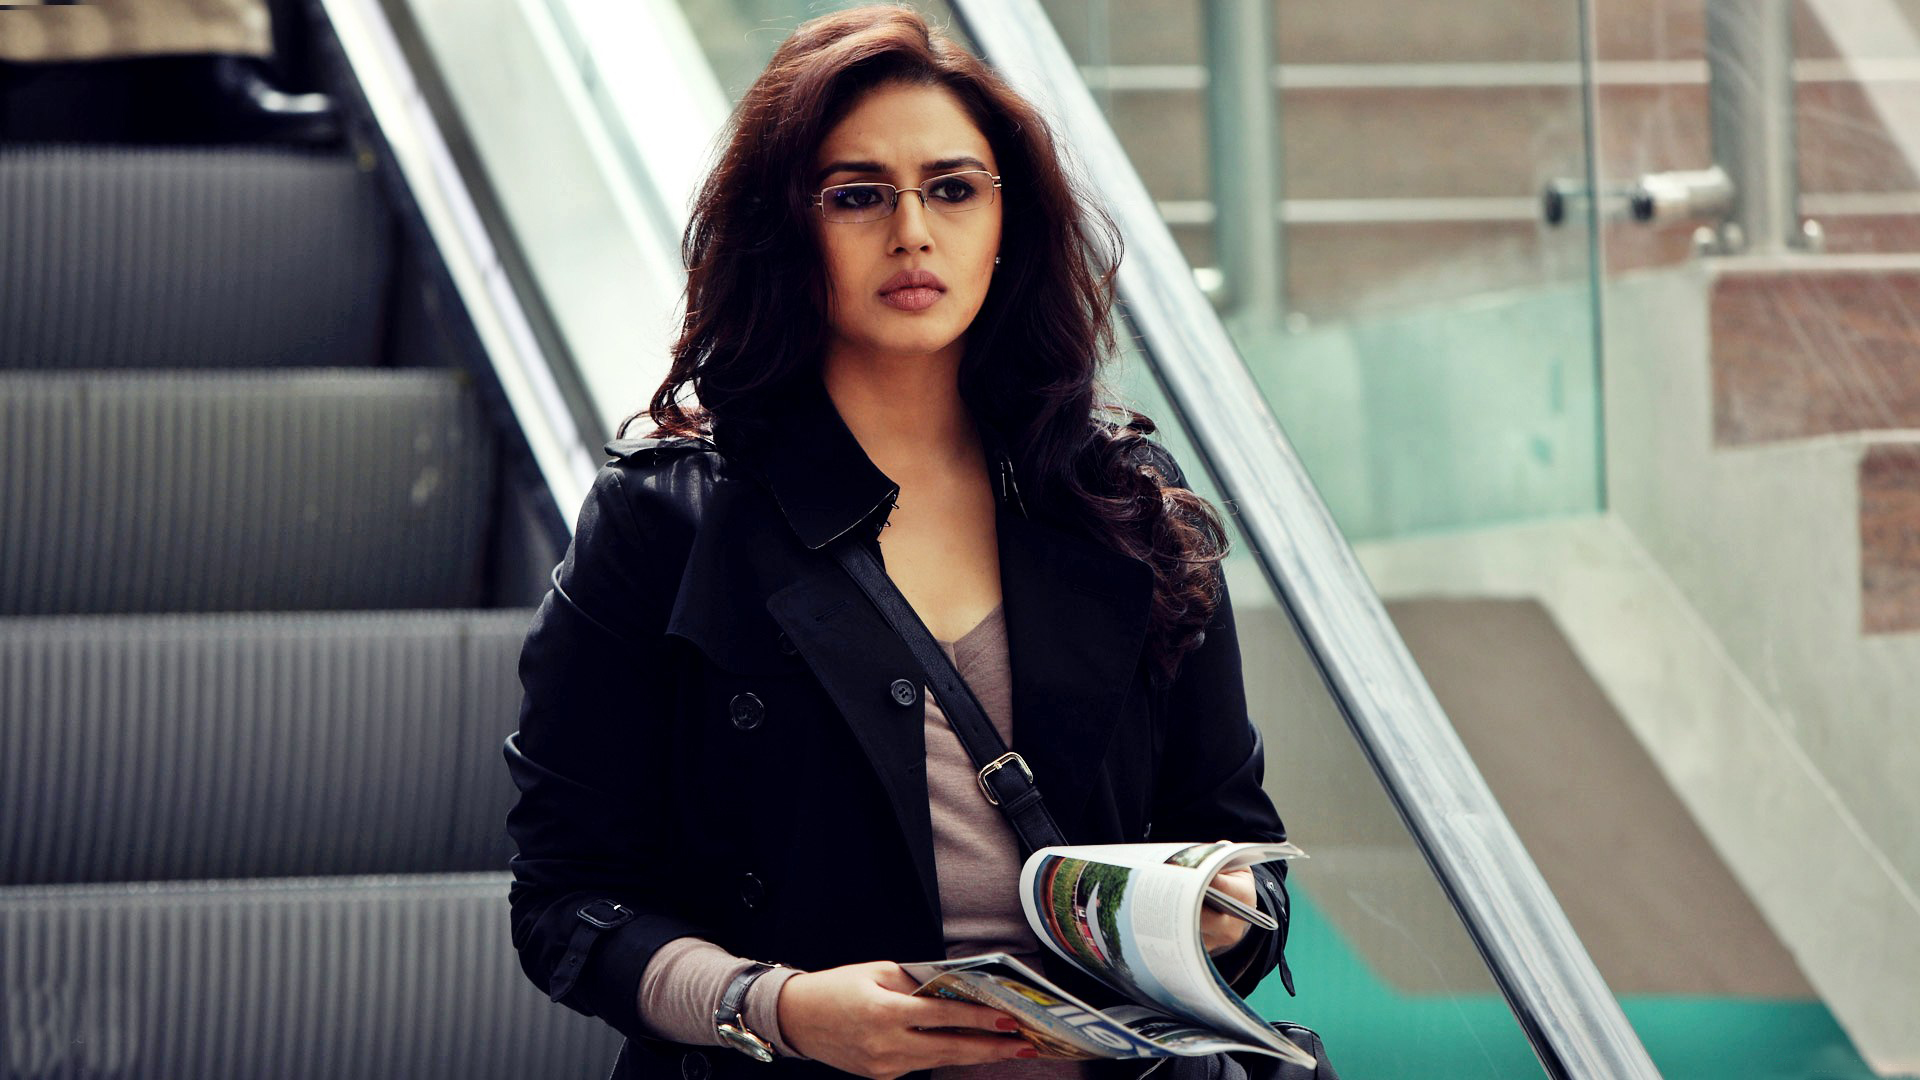 lovely huma qureshi nice still deskop free mobile background photos hd